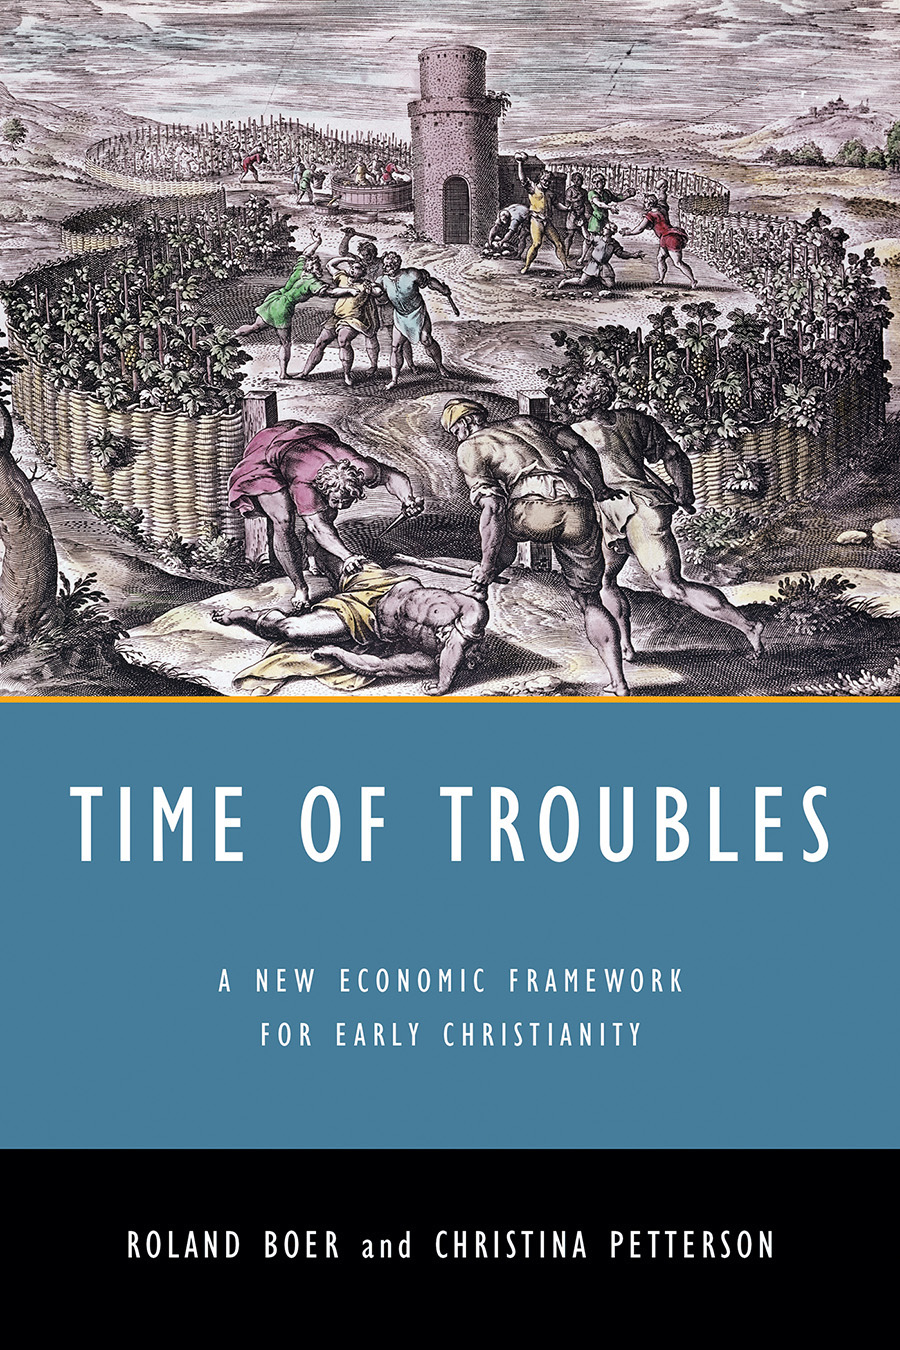 BOER, R. ; PETTERSON, C. Time of Troubles: A New Economic Framework for Early Christianity. Minneapolis: Fortress Press, 2017, 320 p.